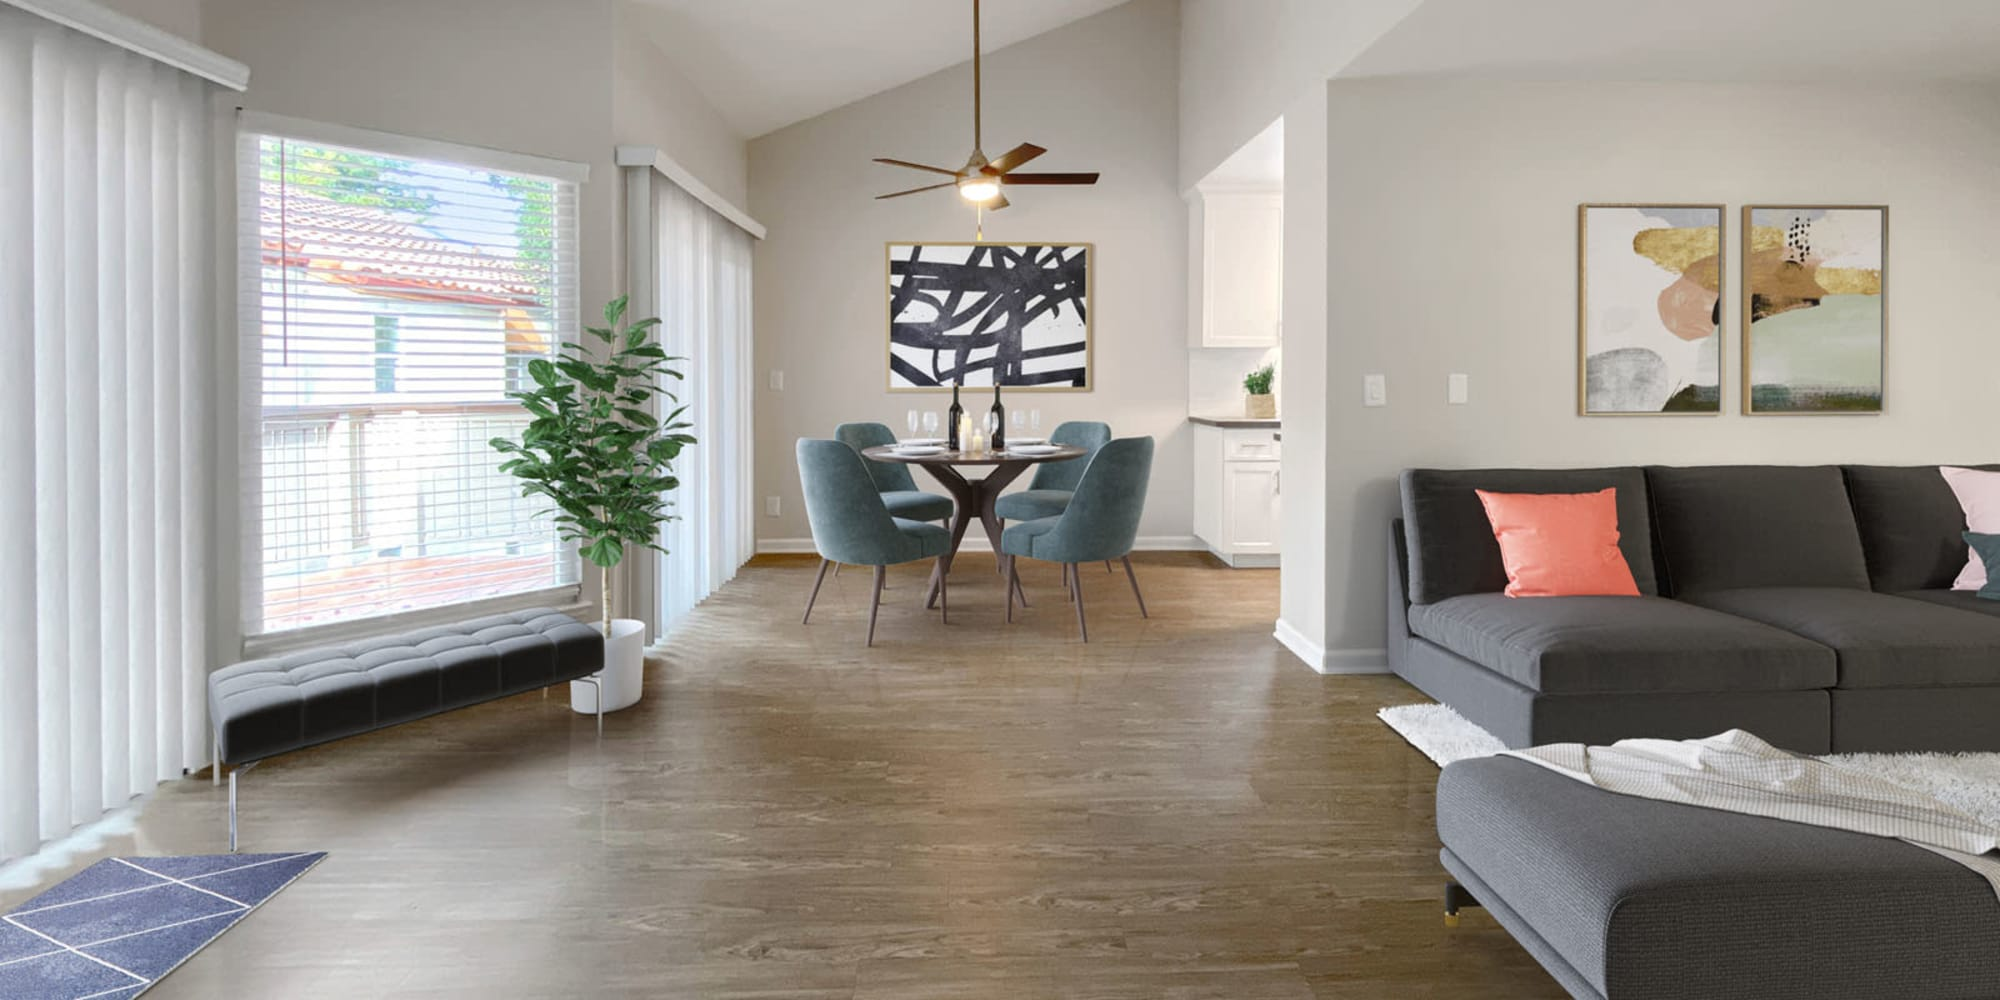 Model home's living area with bay windows and hardwood flooring at Valley Plaza Villages in Pleasanton, California